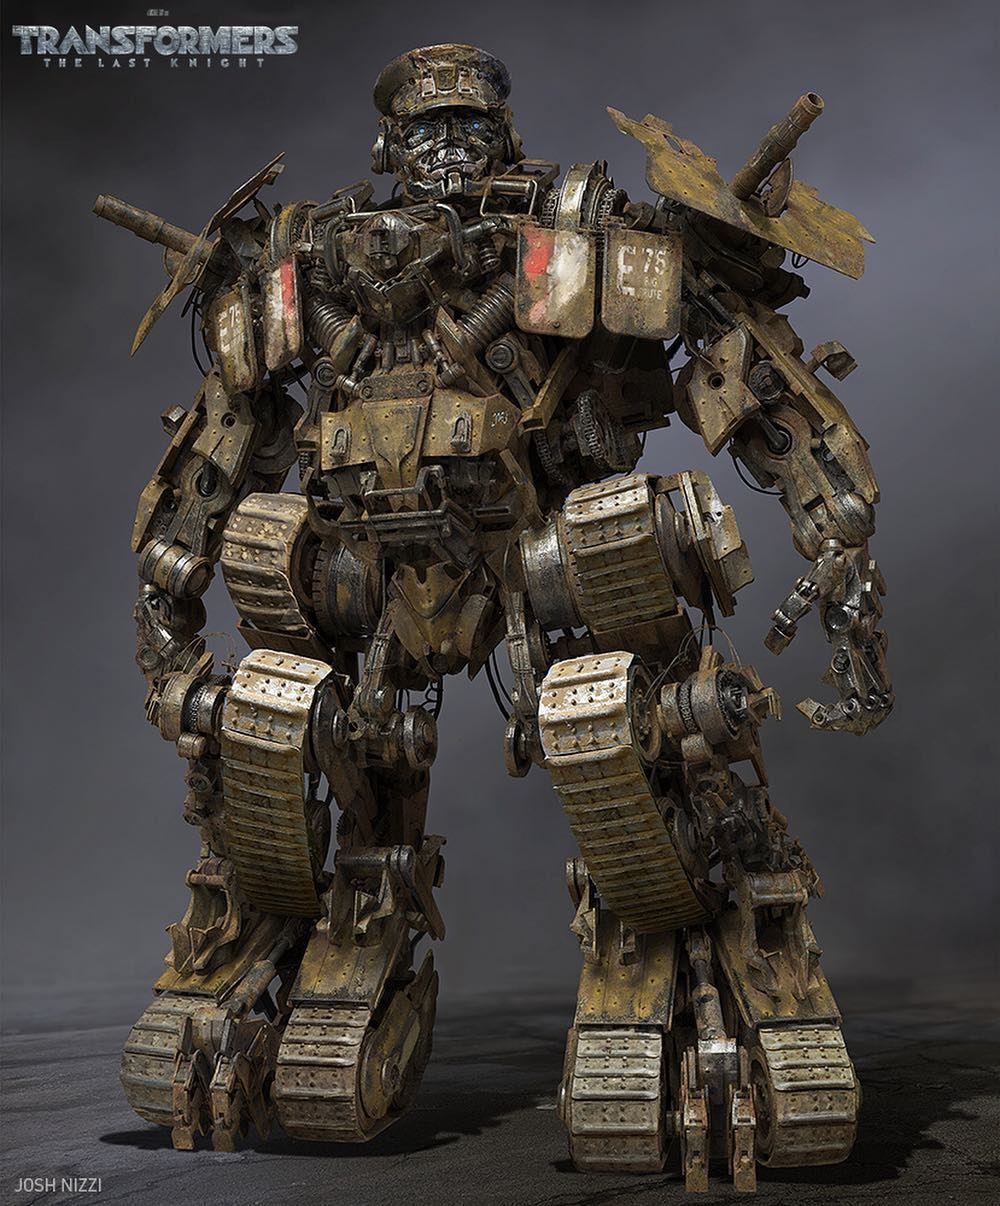 Transformers News: Transformers: The Last Knight Concept Art - Mohawk, Bulldog, Warpath, Megatron in Paris